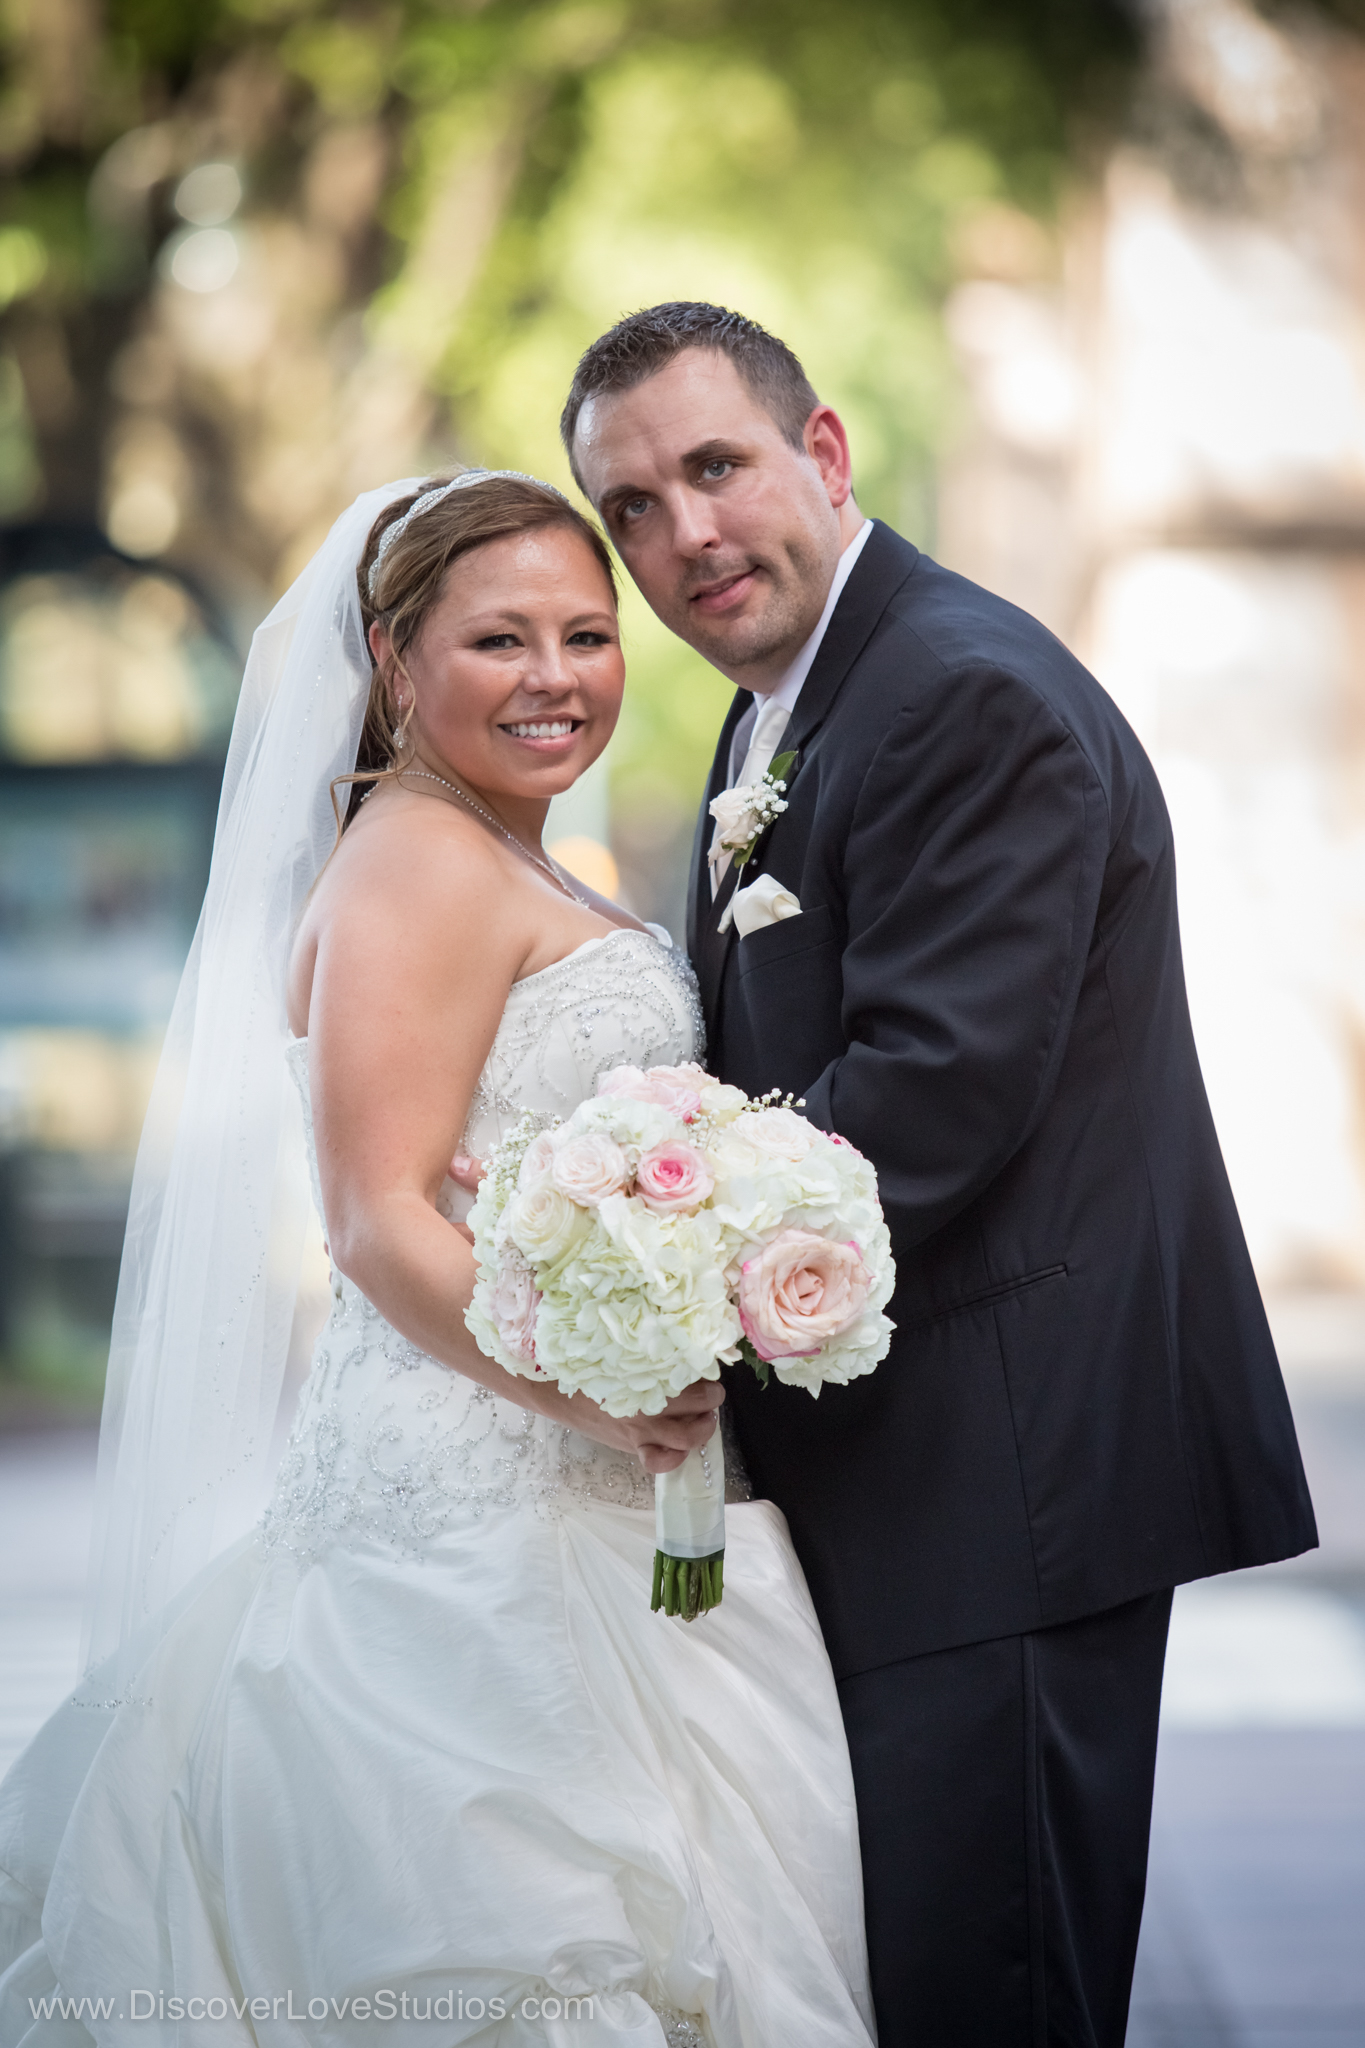 bride and groom wedding portrait in Uptown Charlotte.